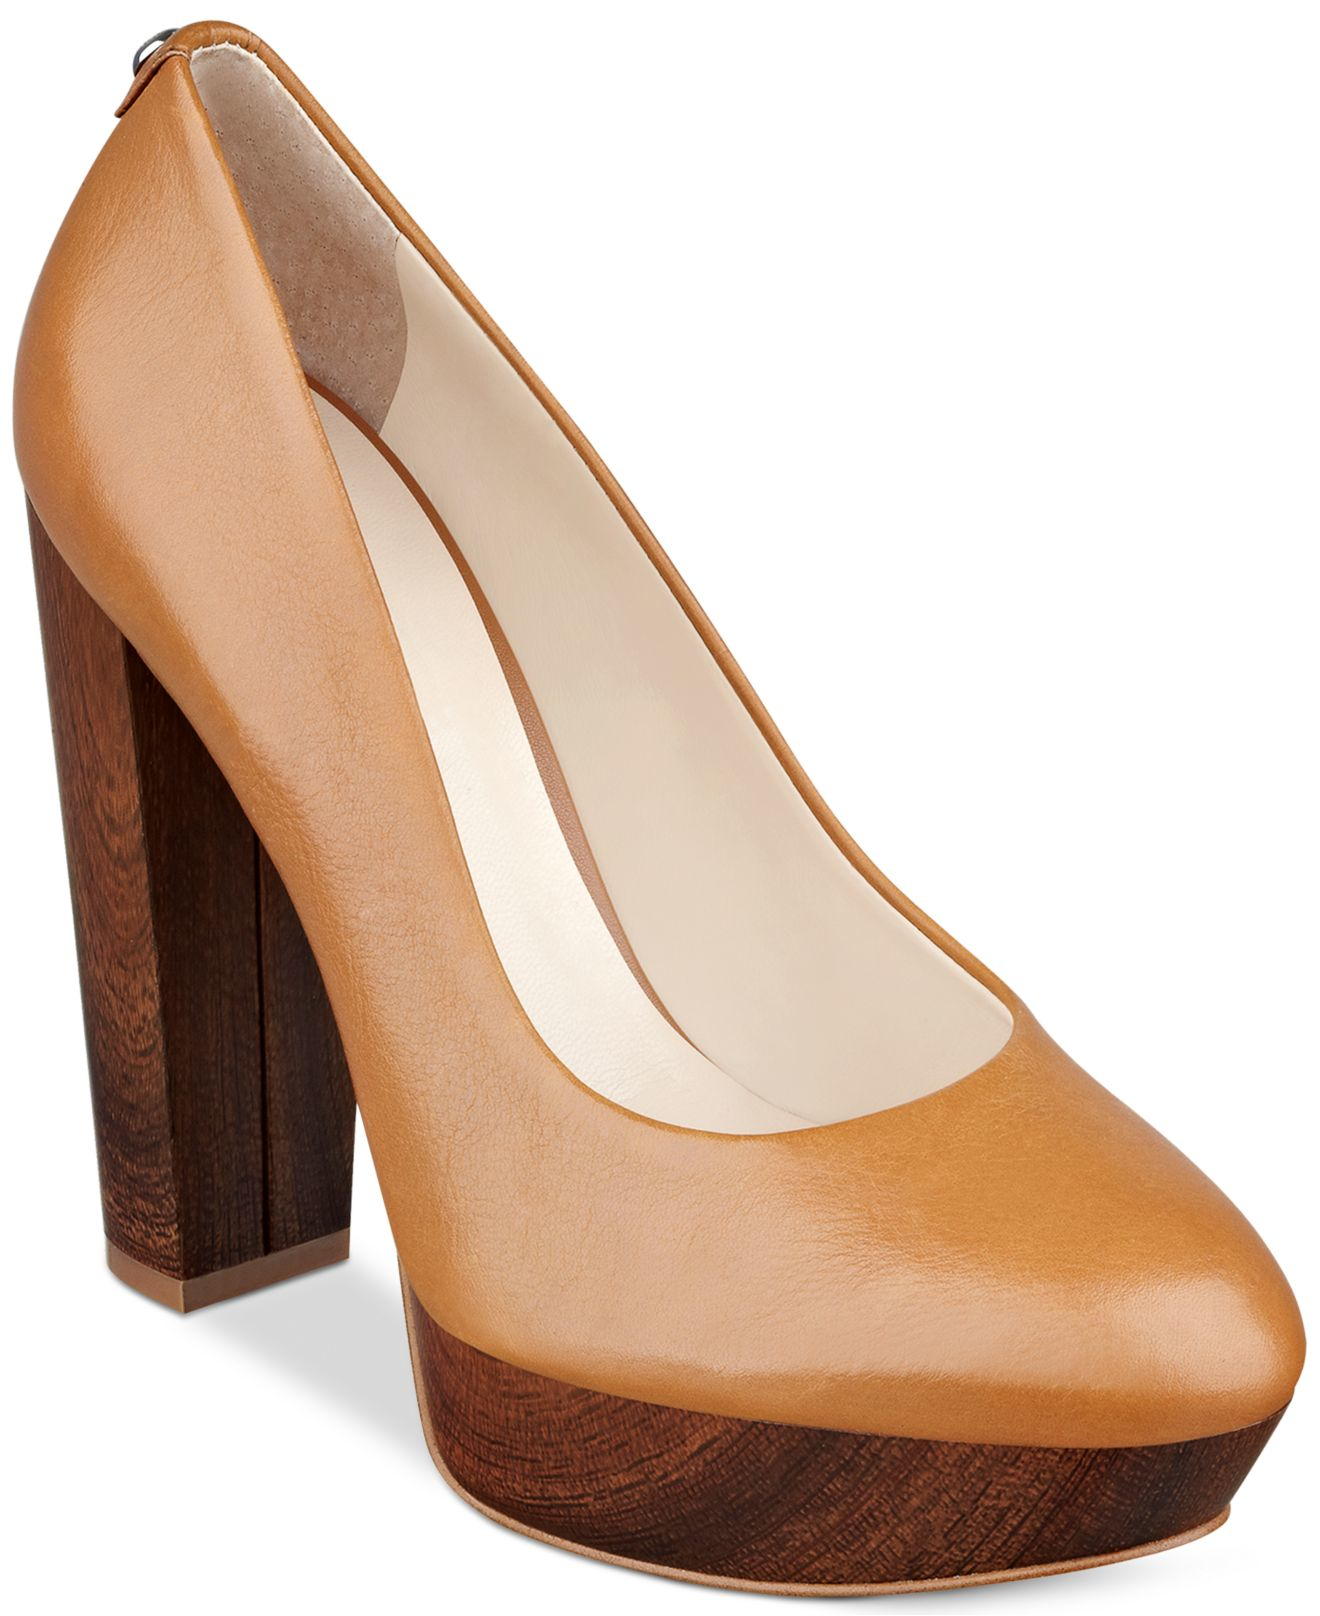 Shop for cheap Women's Shoes? We have great Women's Shoes on sale. Buy cheap Women's Shoes online at 10mins.ml today!